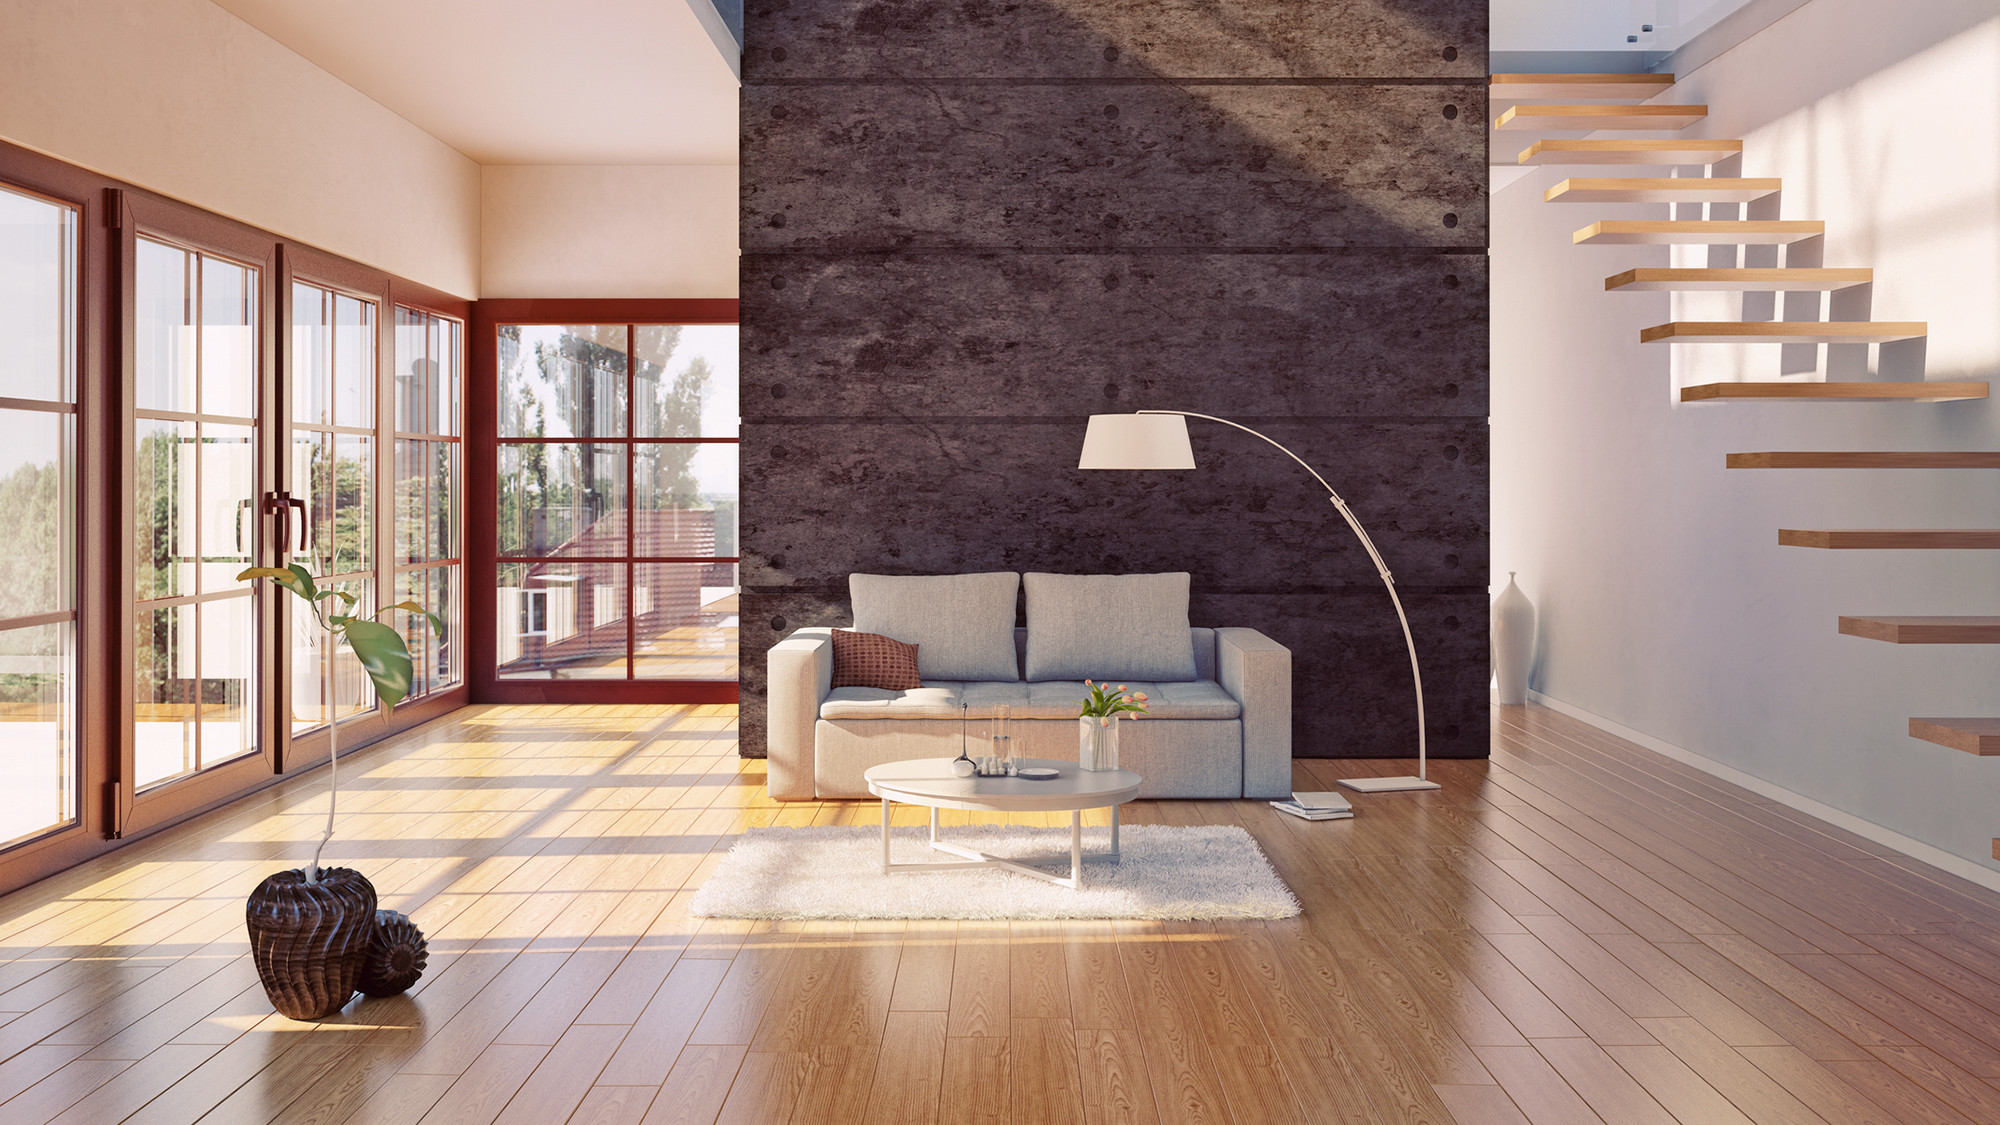 wholesale hardwood flooring chicago of do hardwood floors provide the best return on investment realtor coma for hardwood floors investment